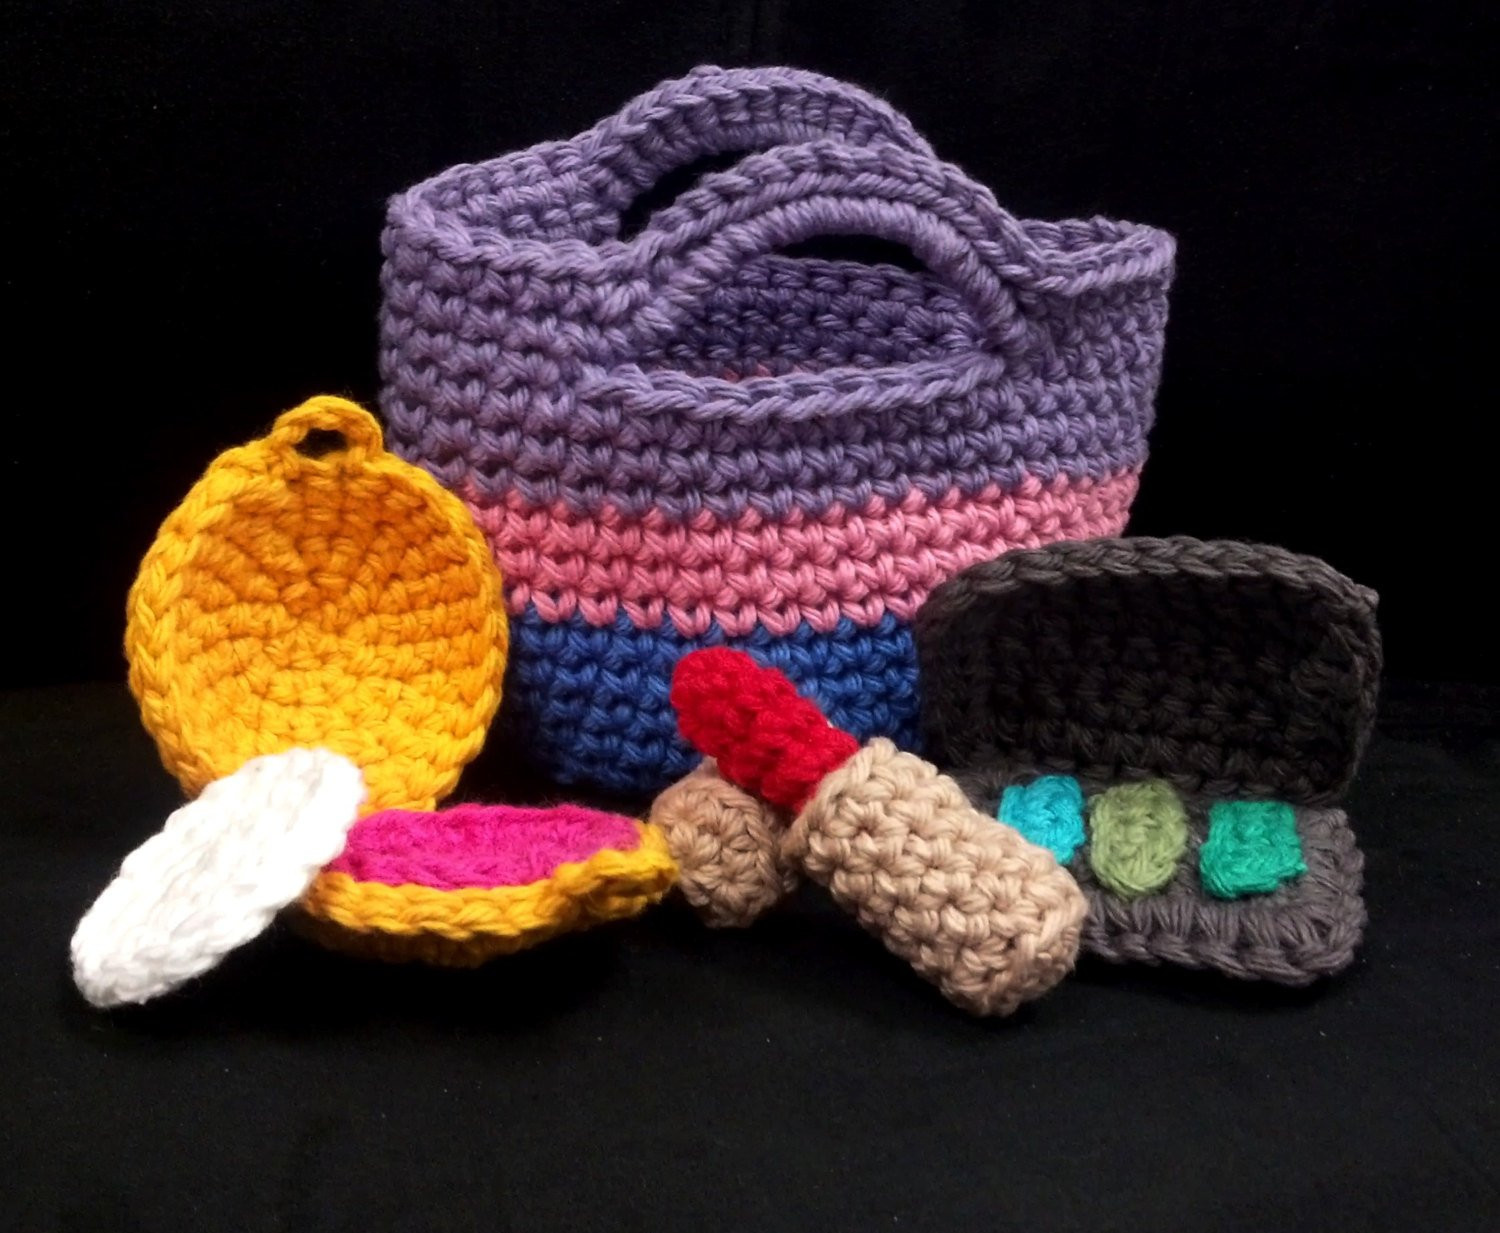 Quick and Easy Crochet Patterns Luxury Amigurumi Crochet Pattern Quick and Easy Make Up and Bag Of Fresh 47 Pictures Quick and Easy Crochet Patterns